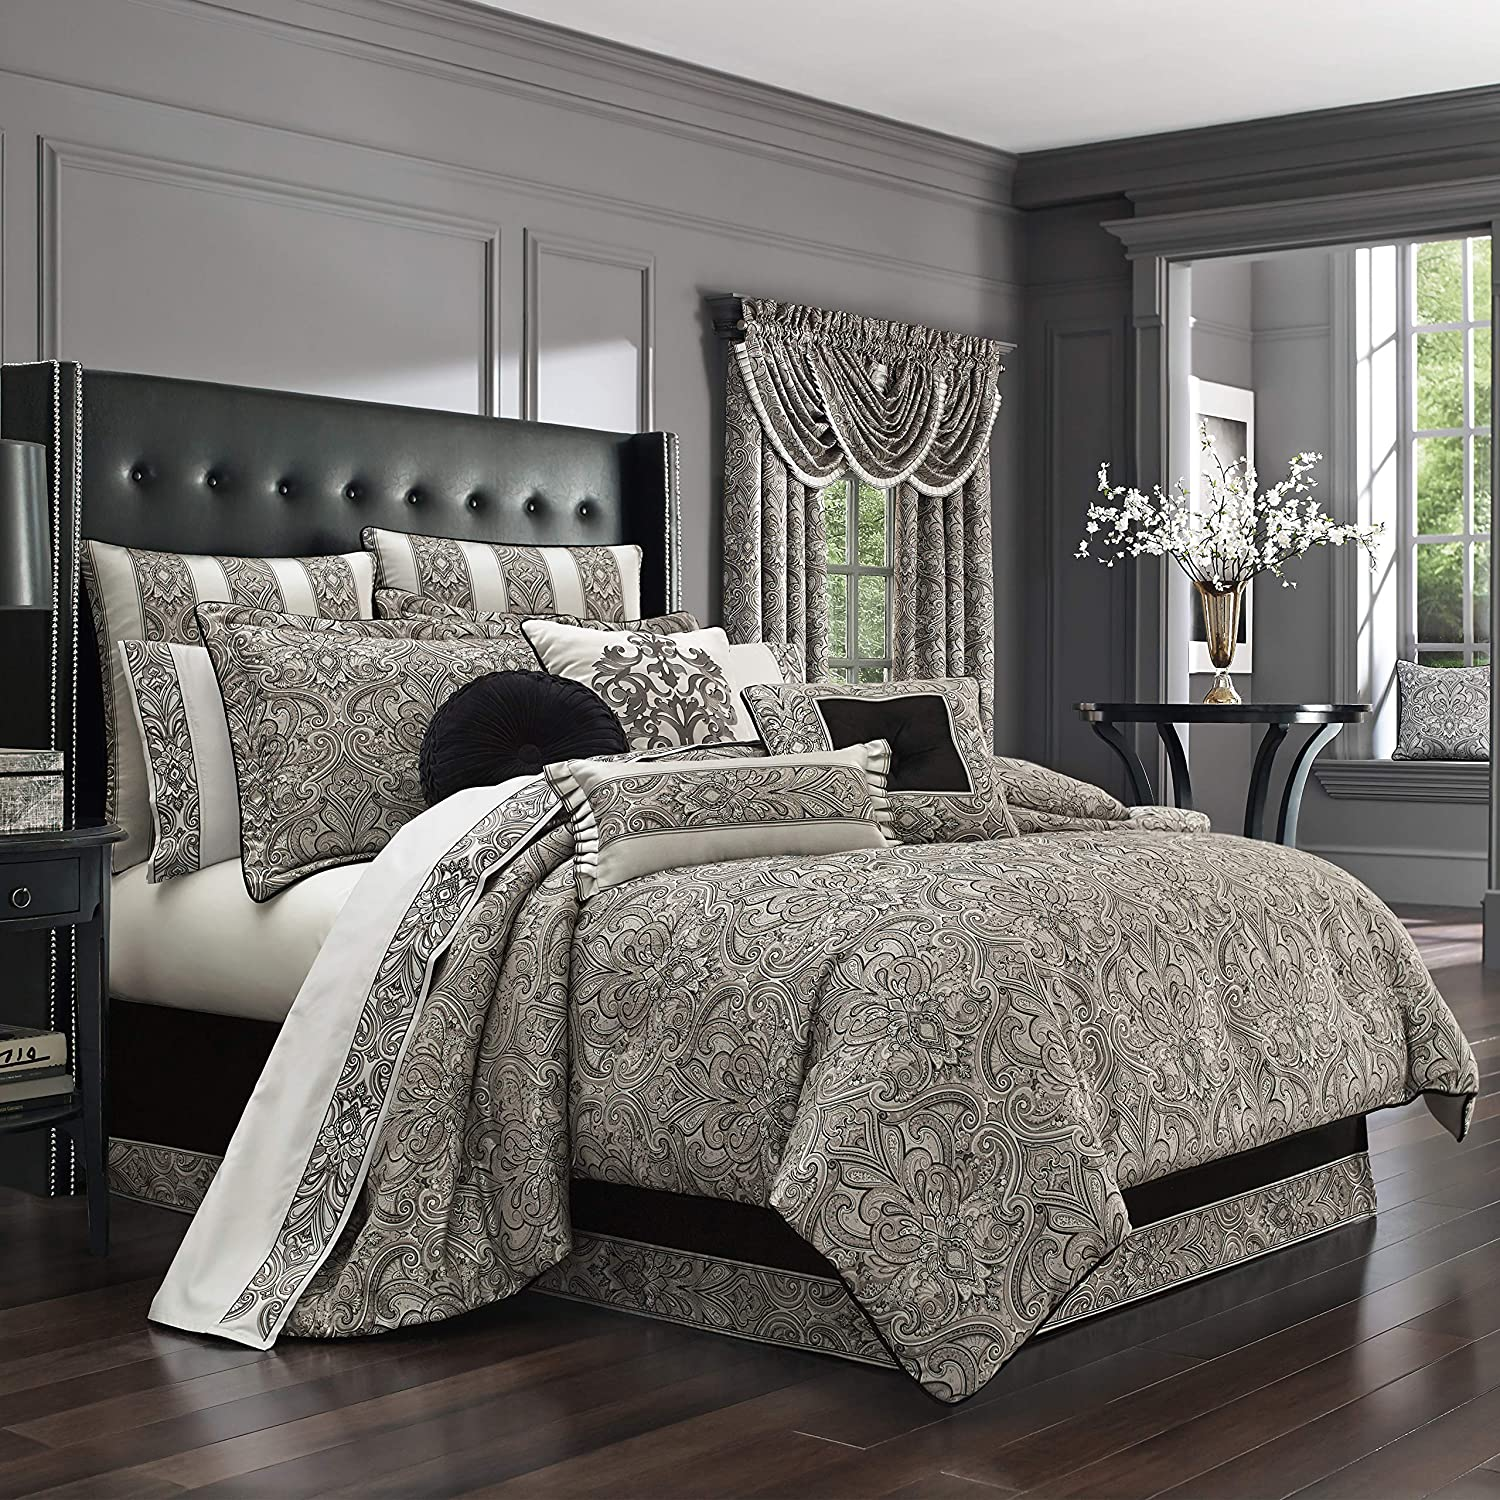 Five Queens Court Carleigh Woven Jacquard Luxury 4pc. Comforter Set, Silver, Queen, 92x96